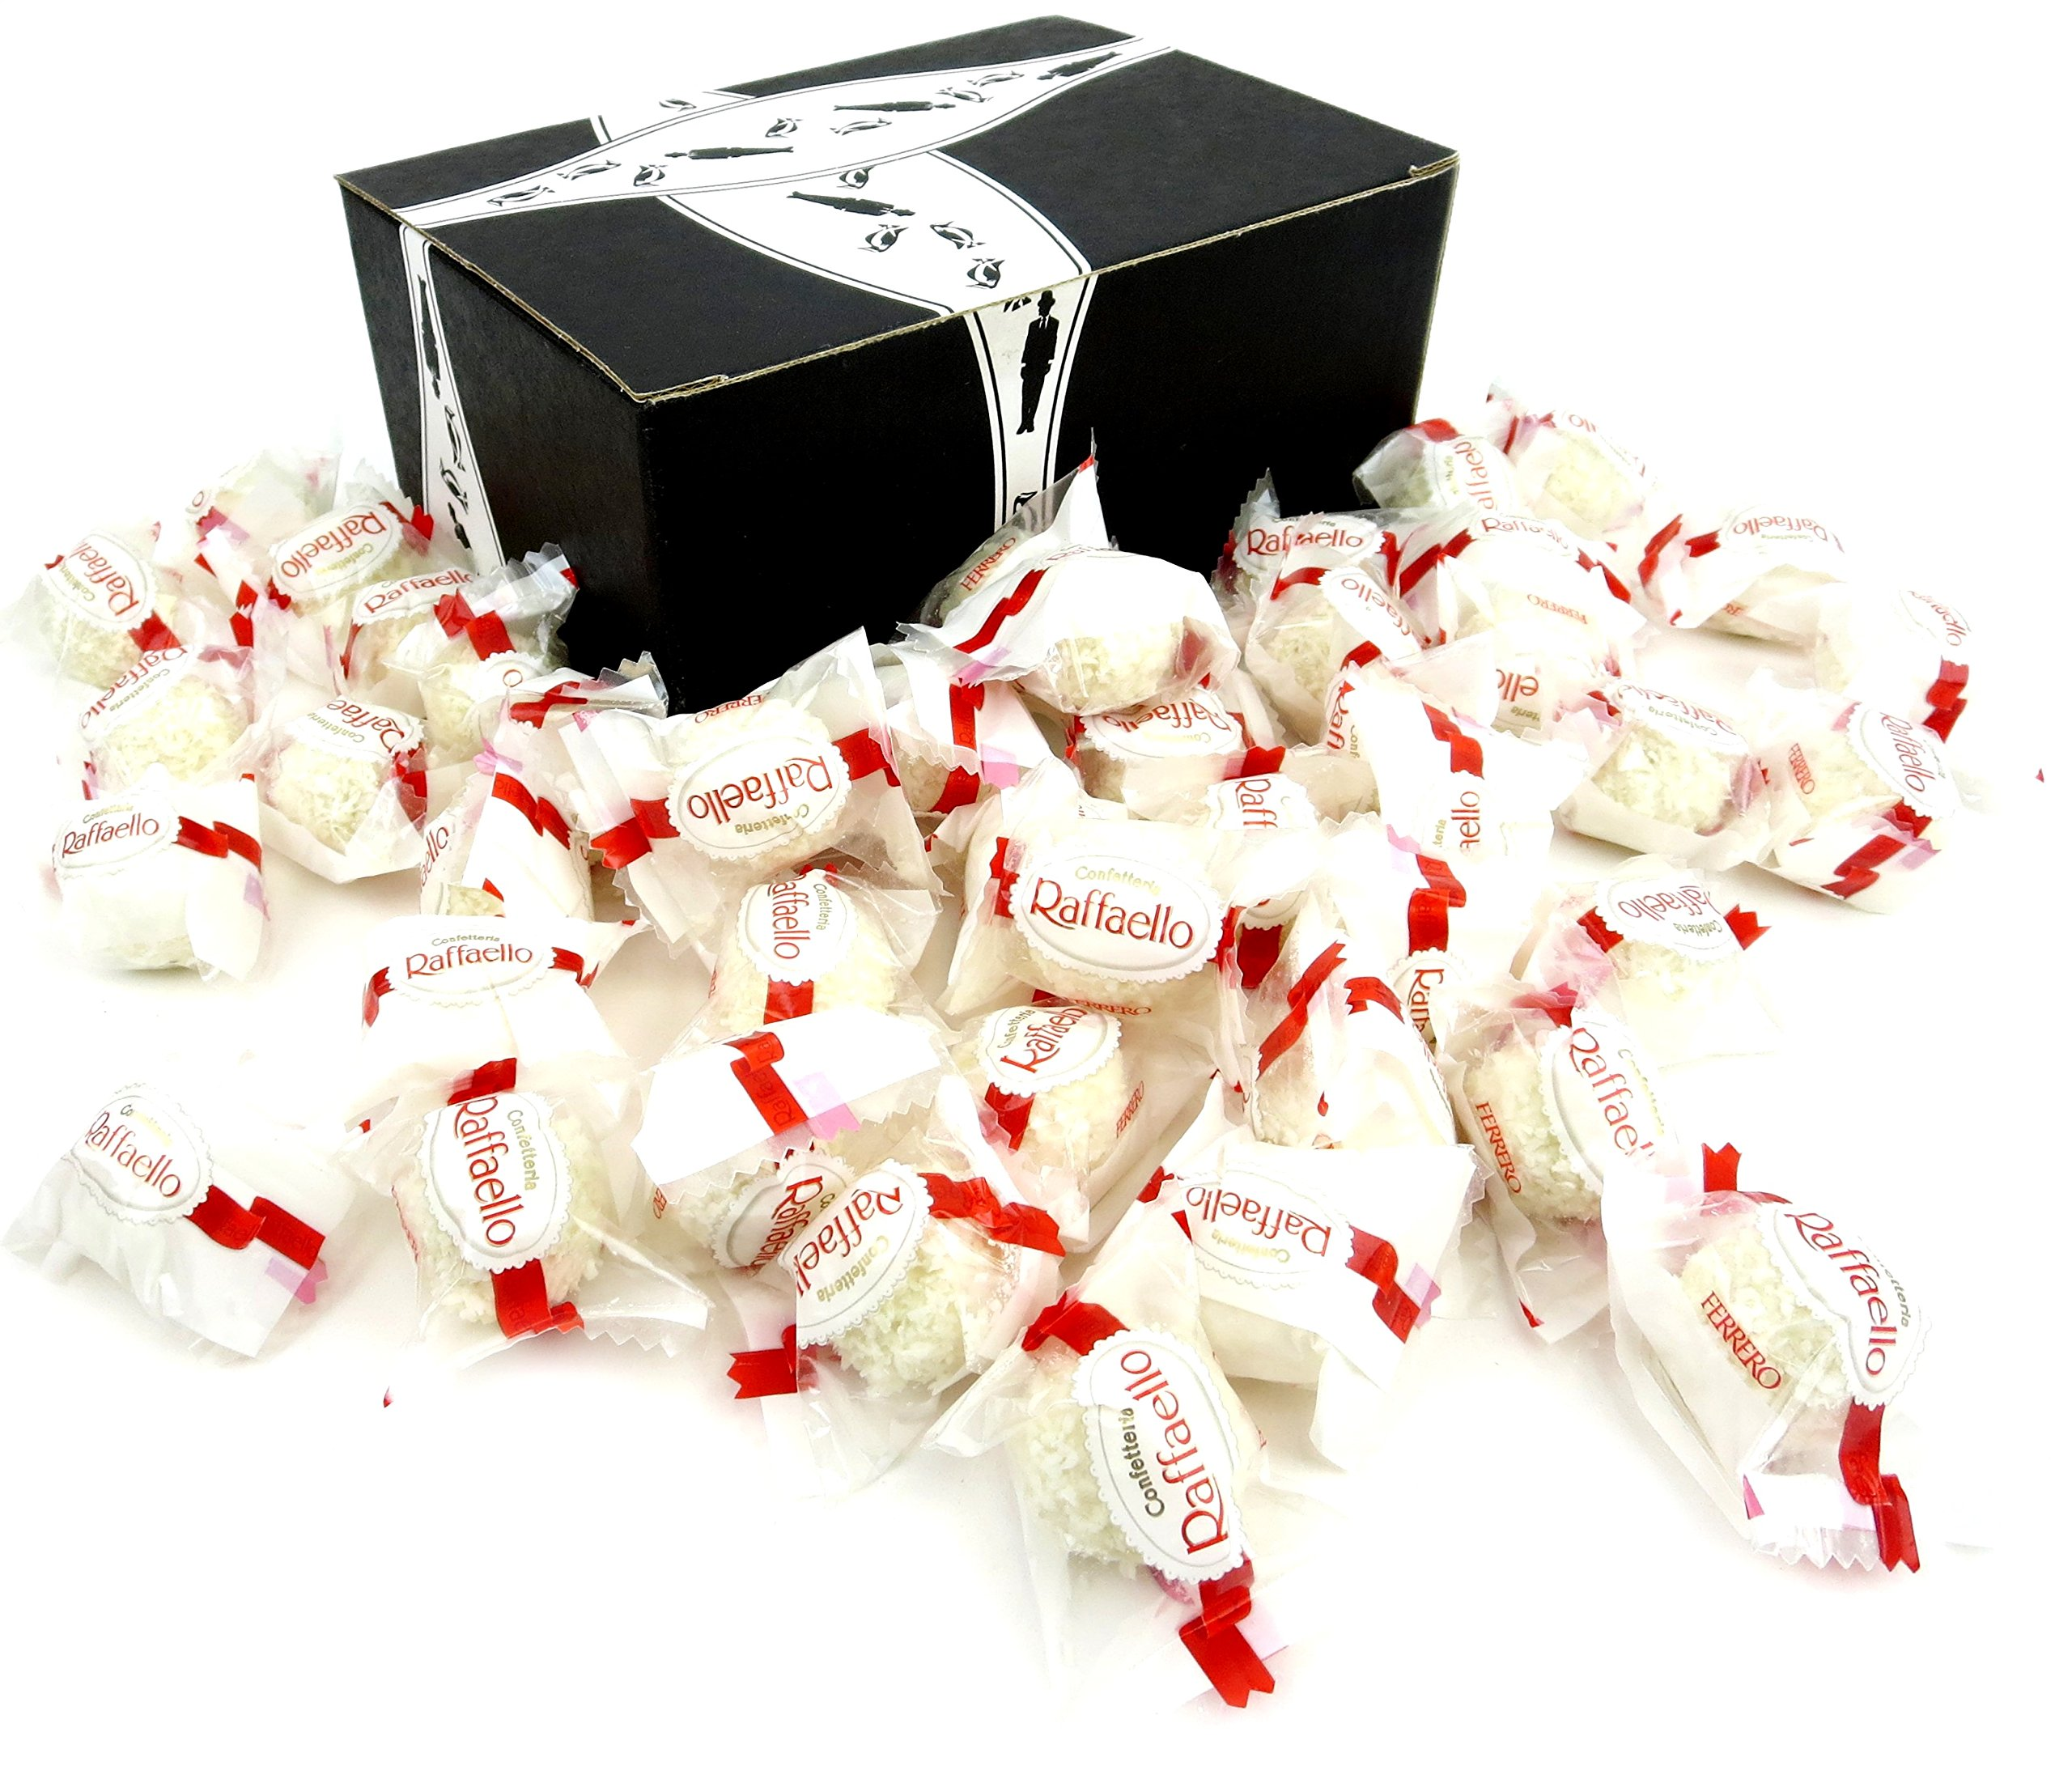 Ferrero Raffaello Almond Coconut Treats in a BlackTie Box (Pack of 45) by Black Tie Mercantile